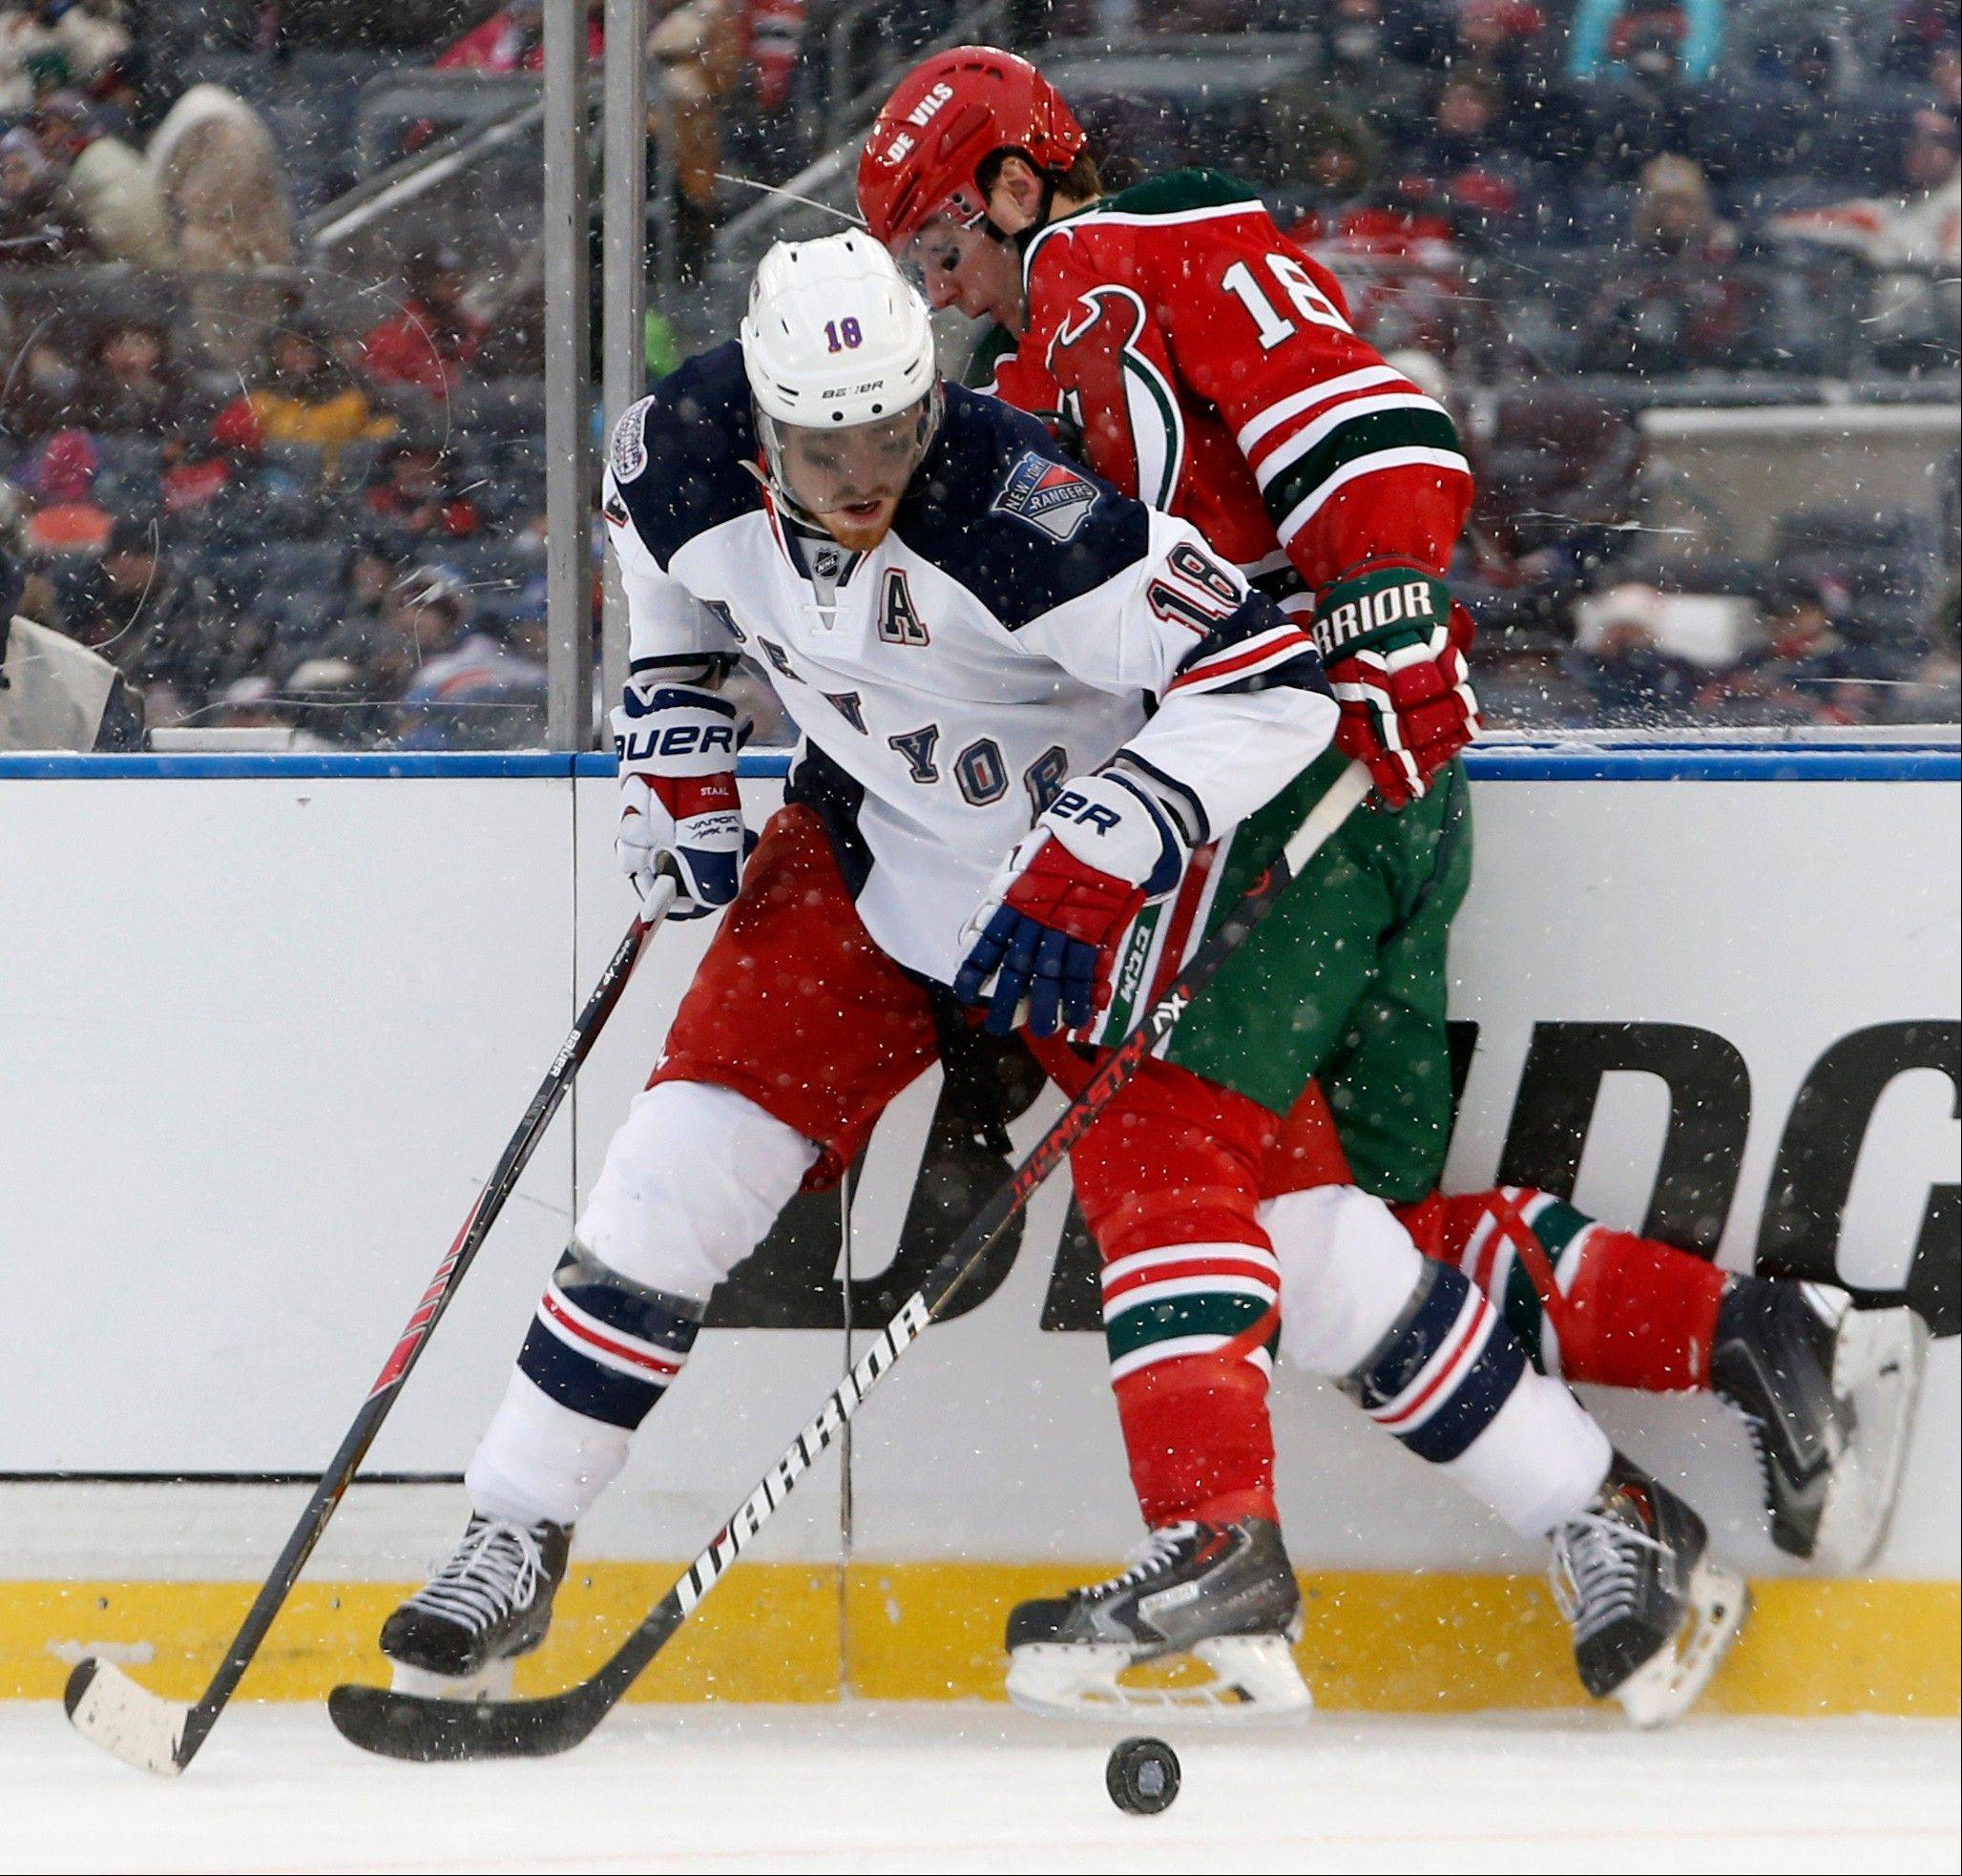 New York Rangers defenseman Marc Staal (18) checks New Jersey Devils right wing Steve Bernier (18) in the second period of a snowy NHL outdoor hockey game at Yankee Stadium in New York, Sunday, Jan. 26, 2014. It is the first time a hockey game has been played in Yankee Stadium.